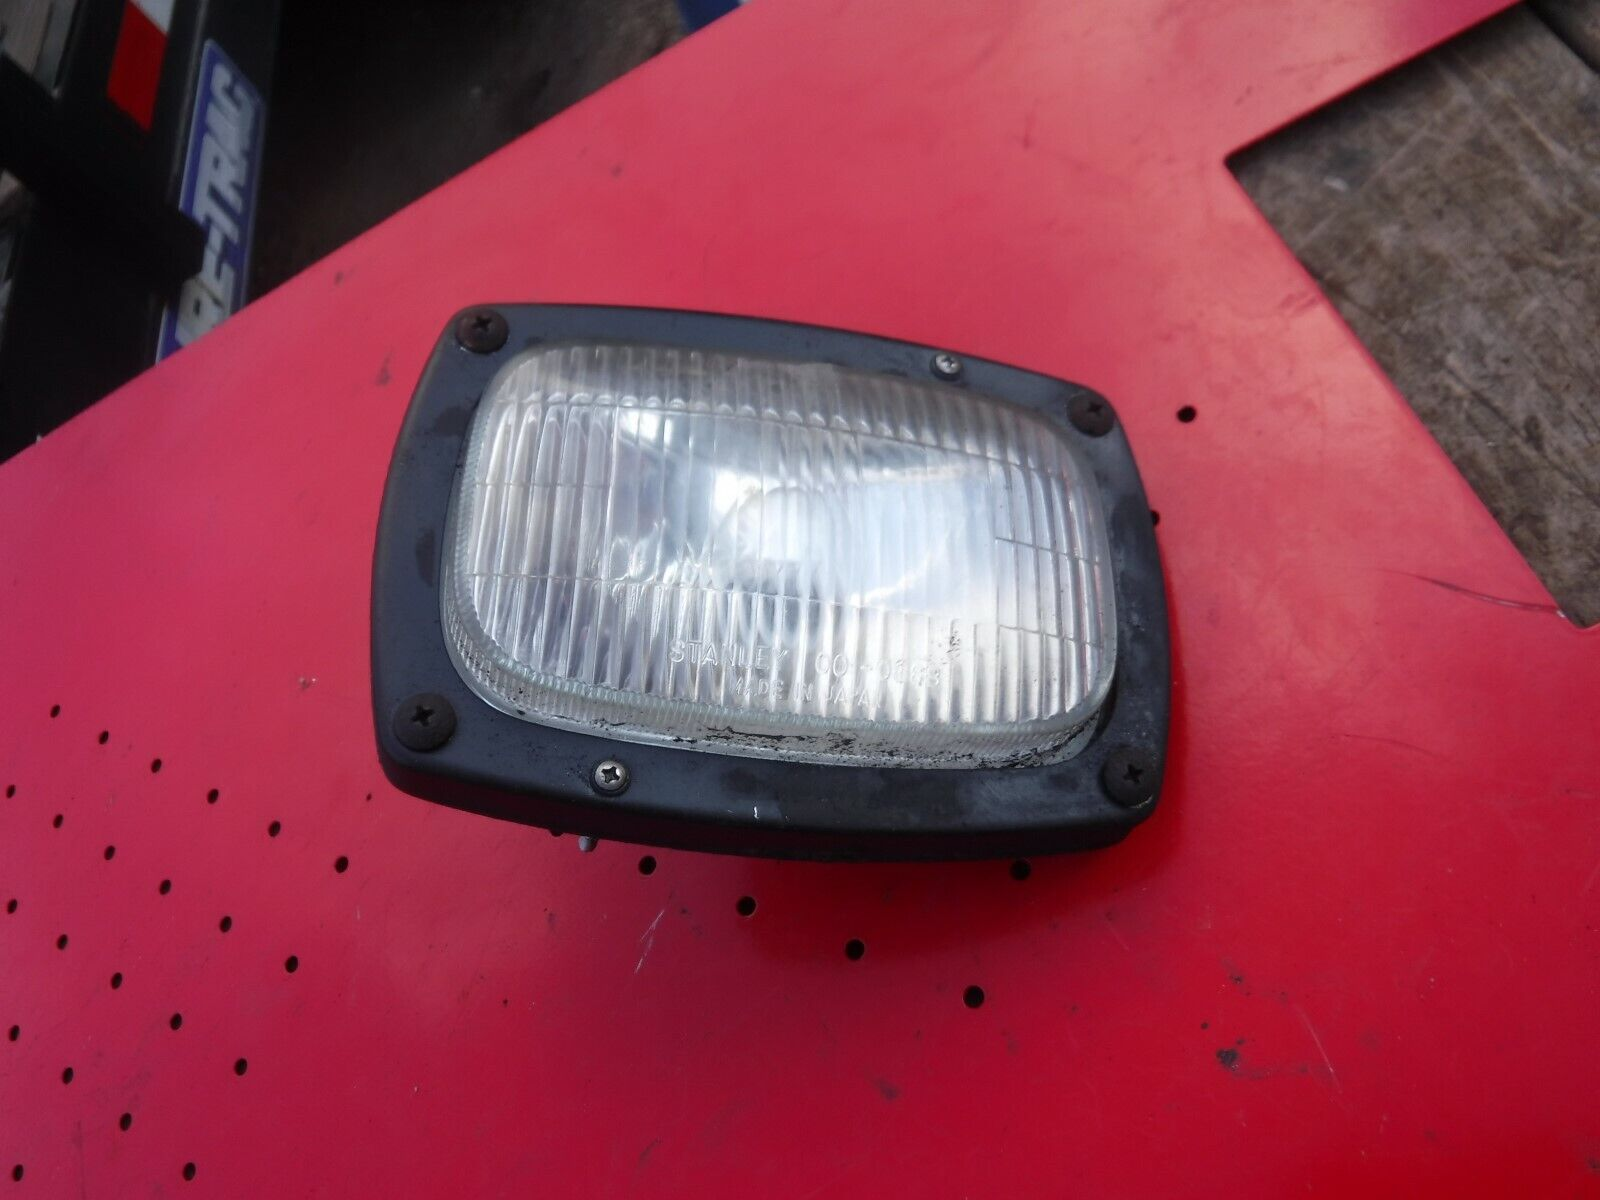 1974 CHAPARRAL 340 SSX snowmobile parts: HEADLIGHT ASSEMBLY